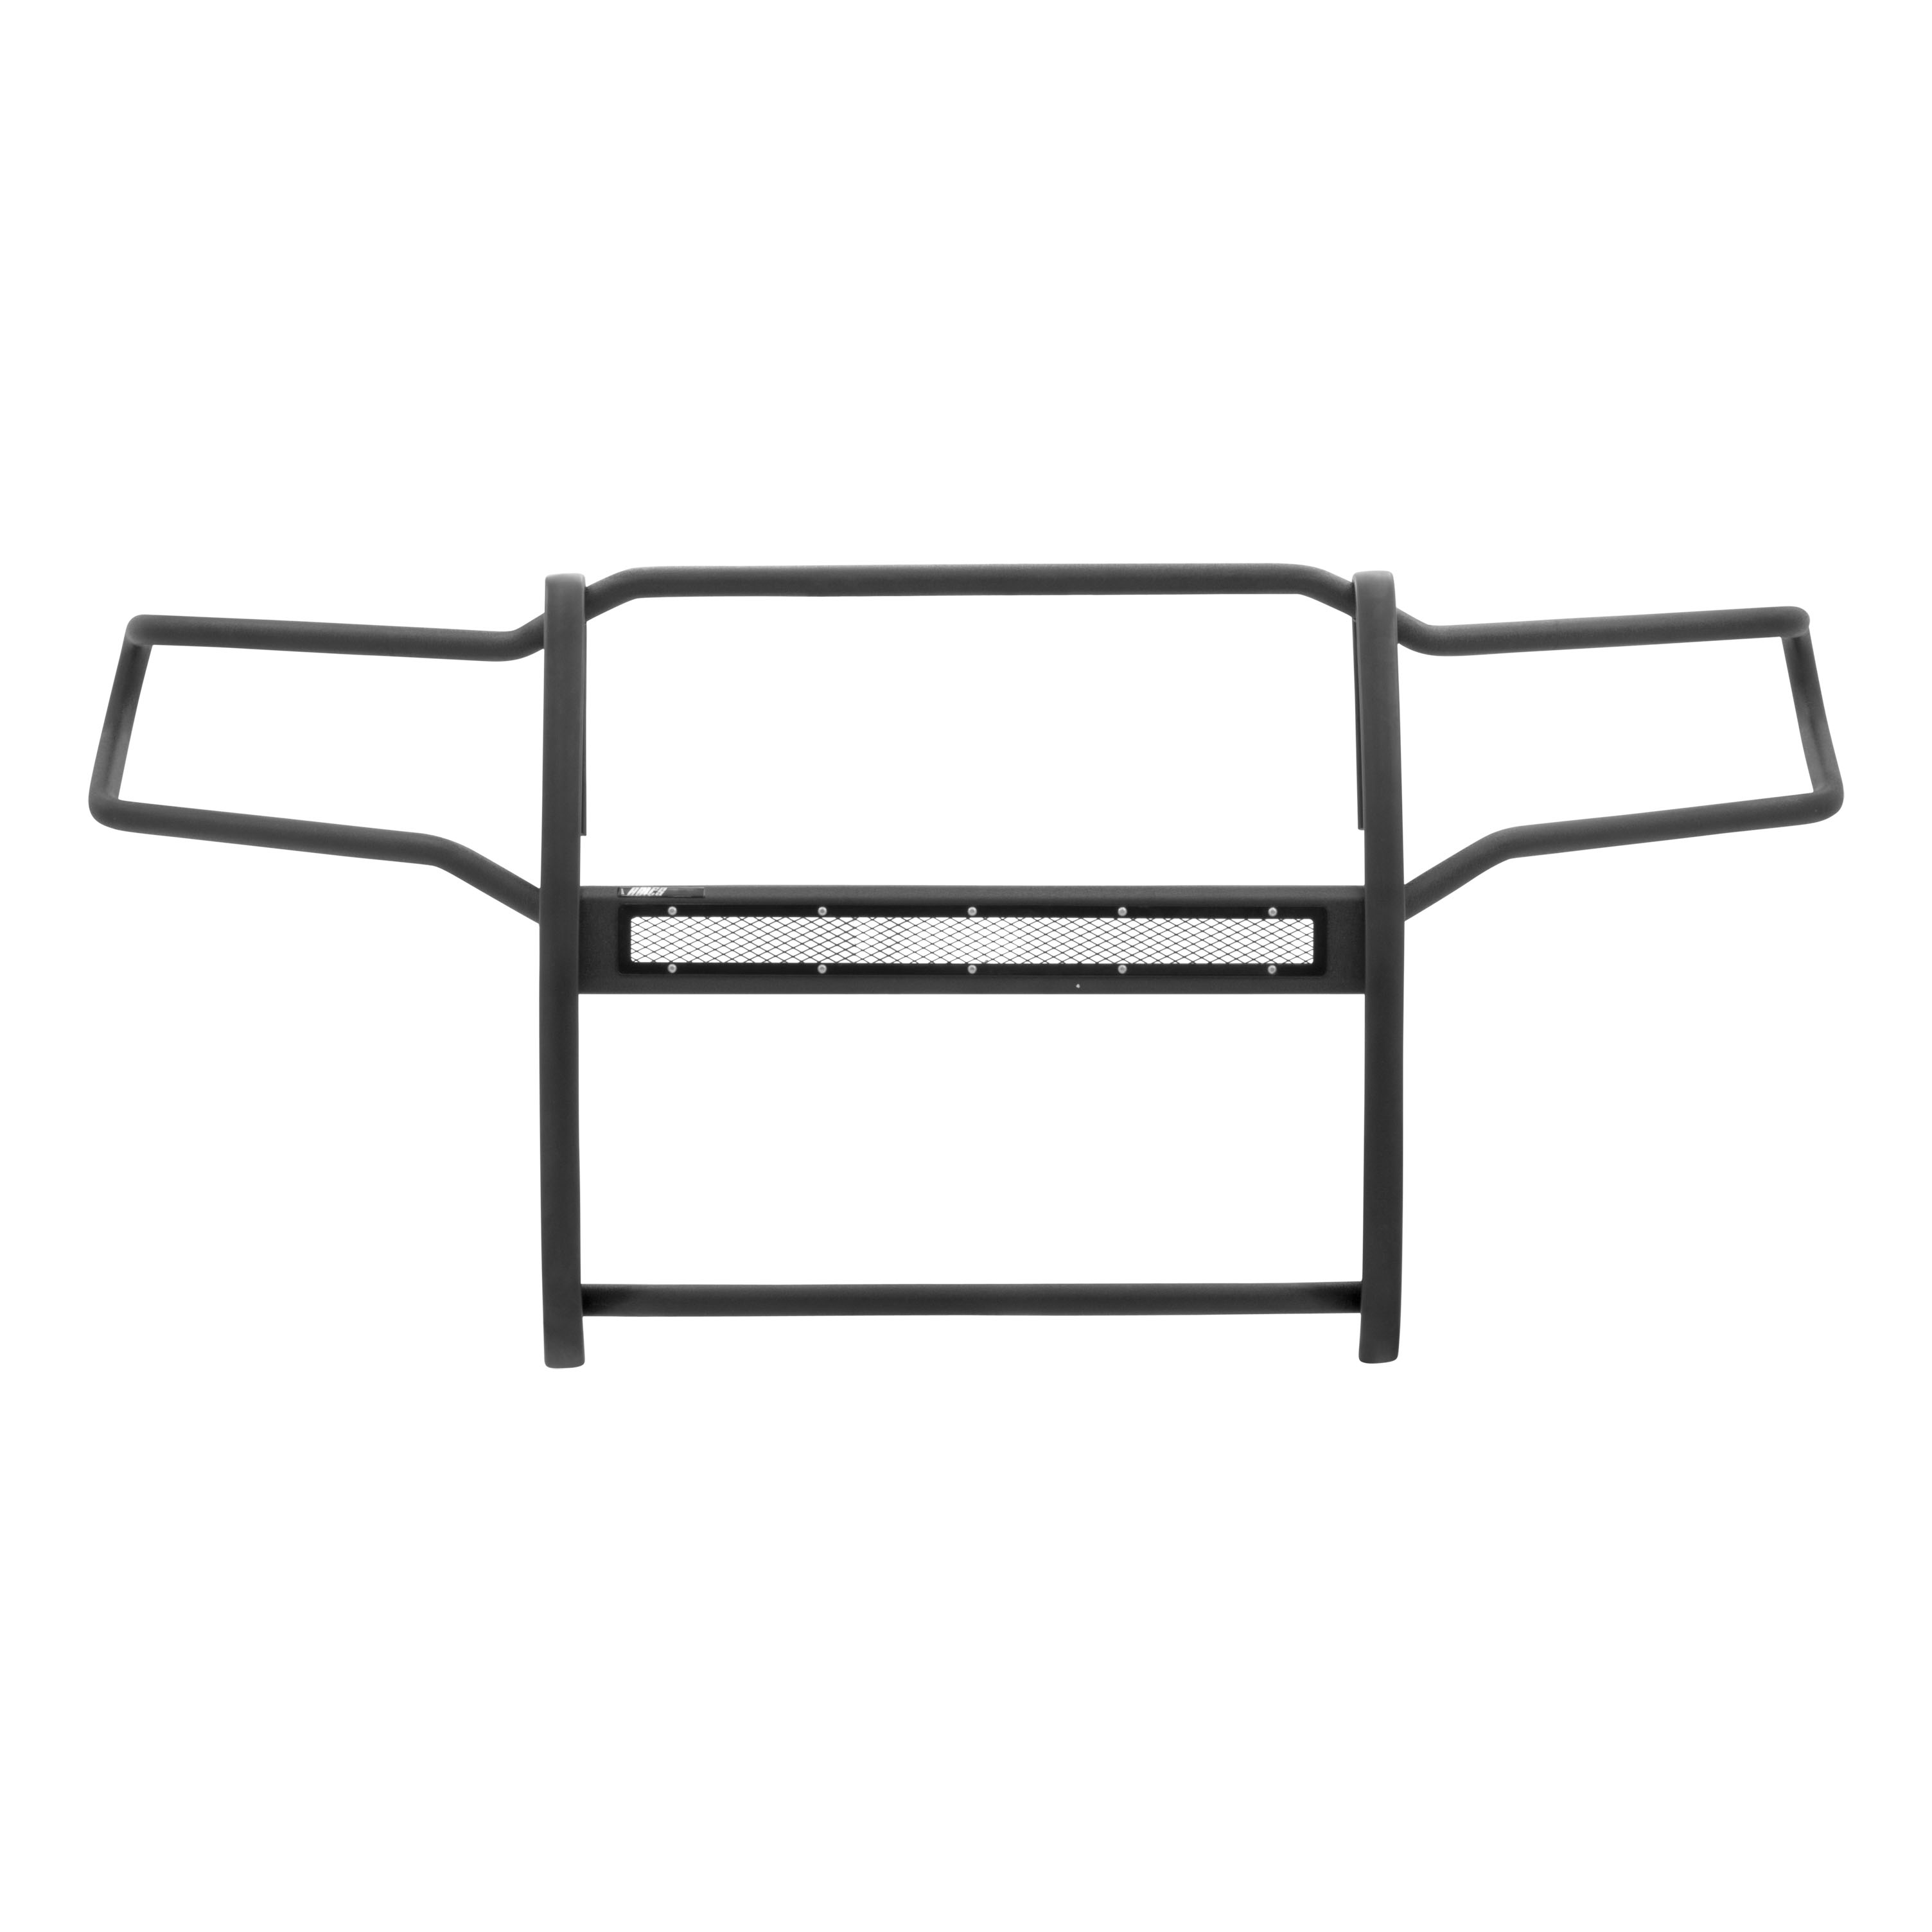 Aries P Pro Series Grille Brush Guard Black For